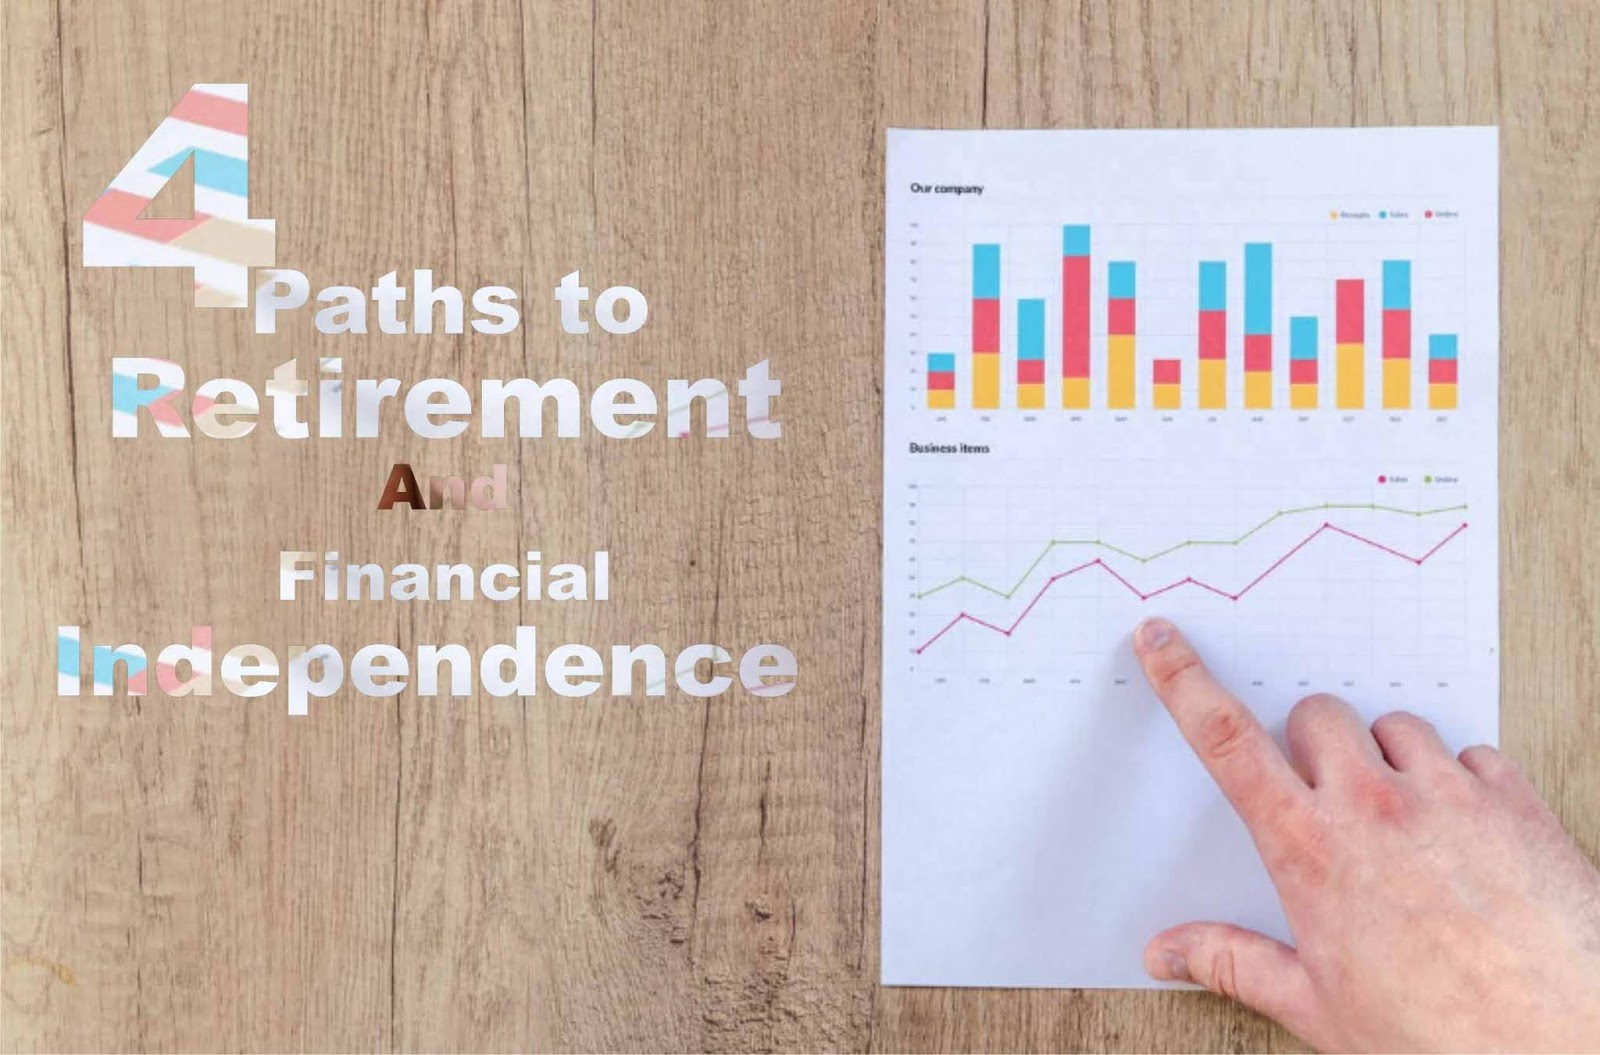 4 Paths to Retirement